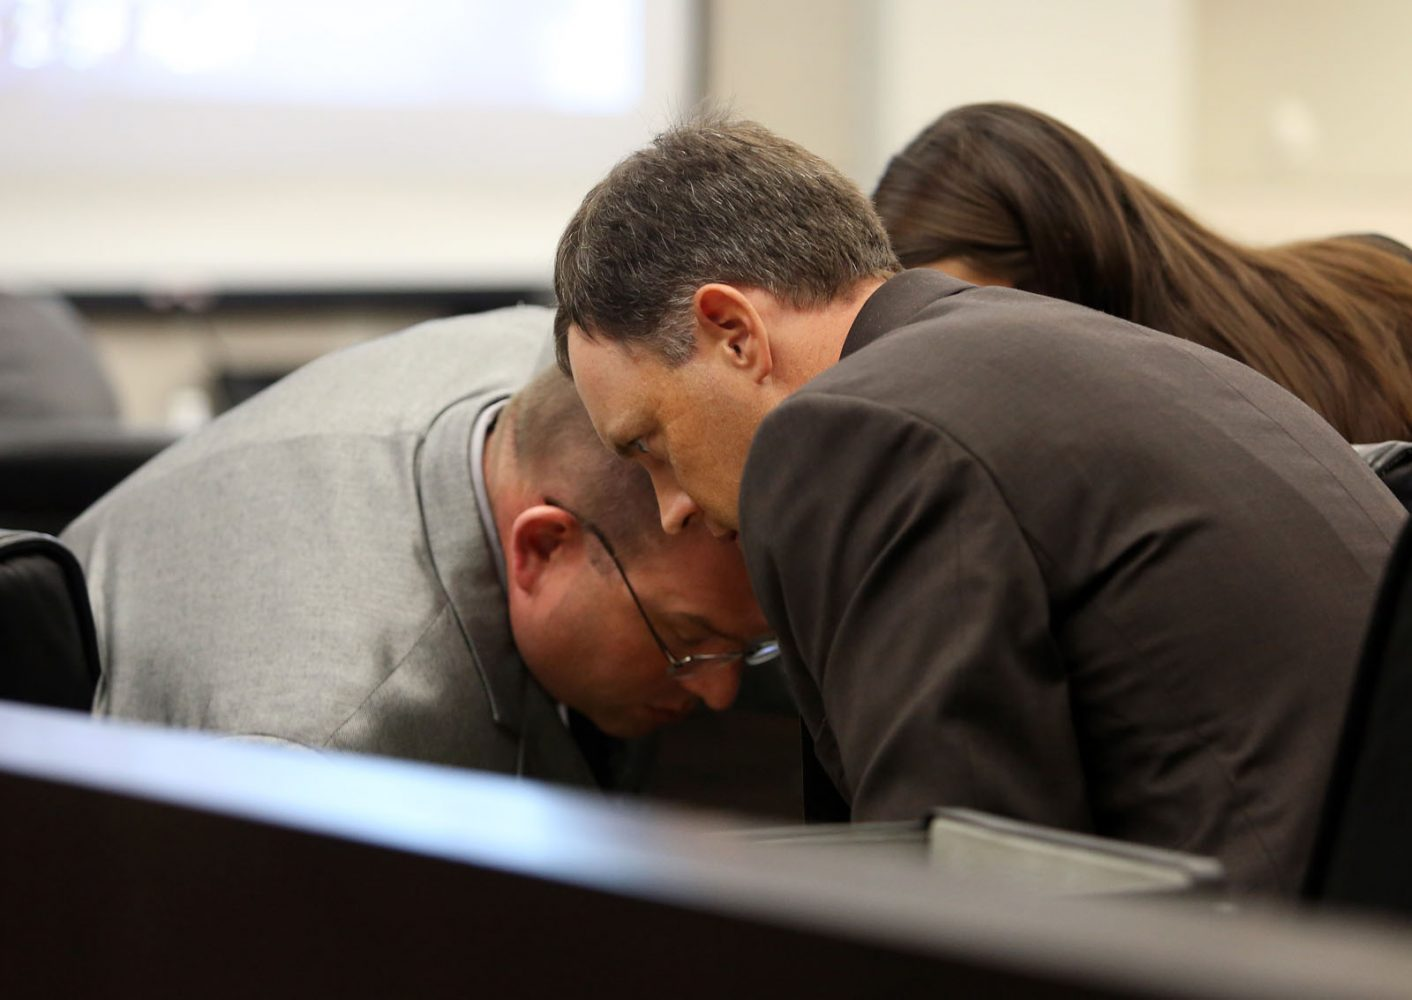 Assistant State Attorney Bill Ezzell huddles with prosecuting attorney Brian Kramer and intern Christine Young during Pedro Bravo's murder trial in courtroom 1B of the Alachua County Criminal Justice Center Friday, August 8, 2014.  Bravo is accused of killing University of Florida student Christian Aguilar.  (Doug Finger/The Gainesville Sun/Pool)